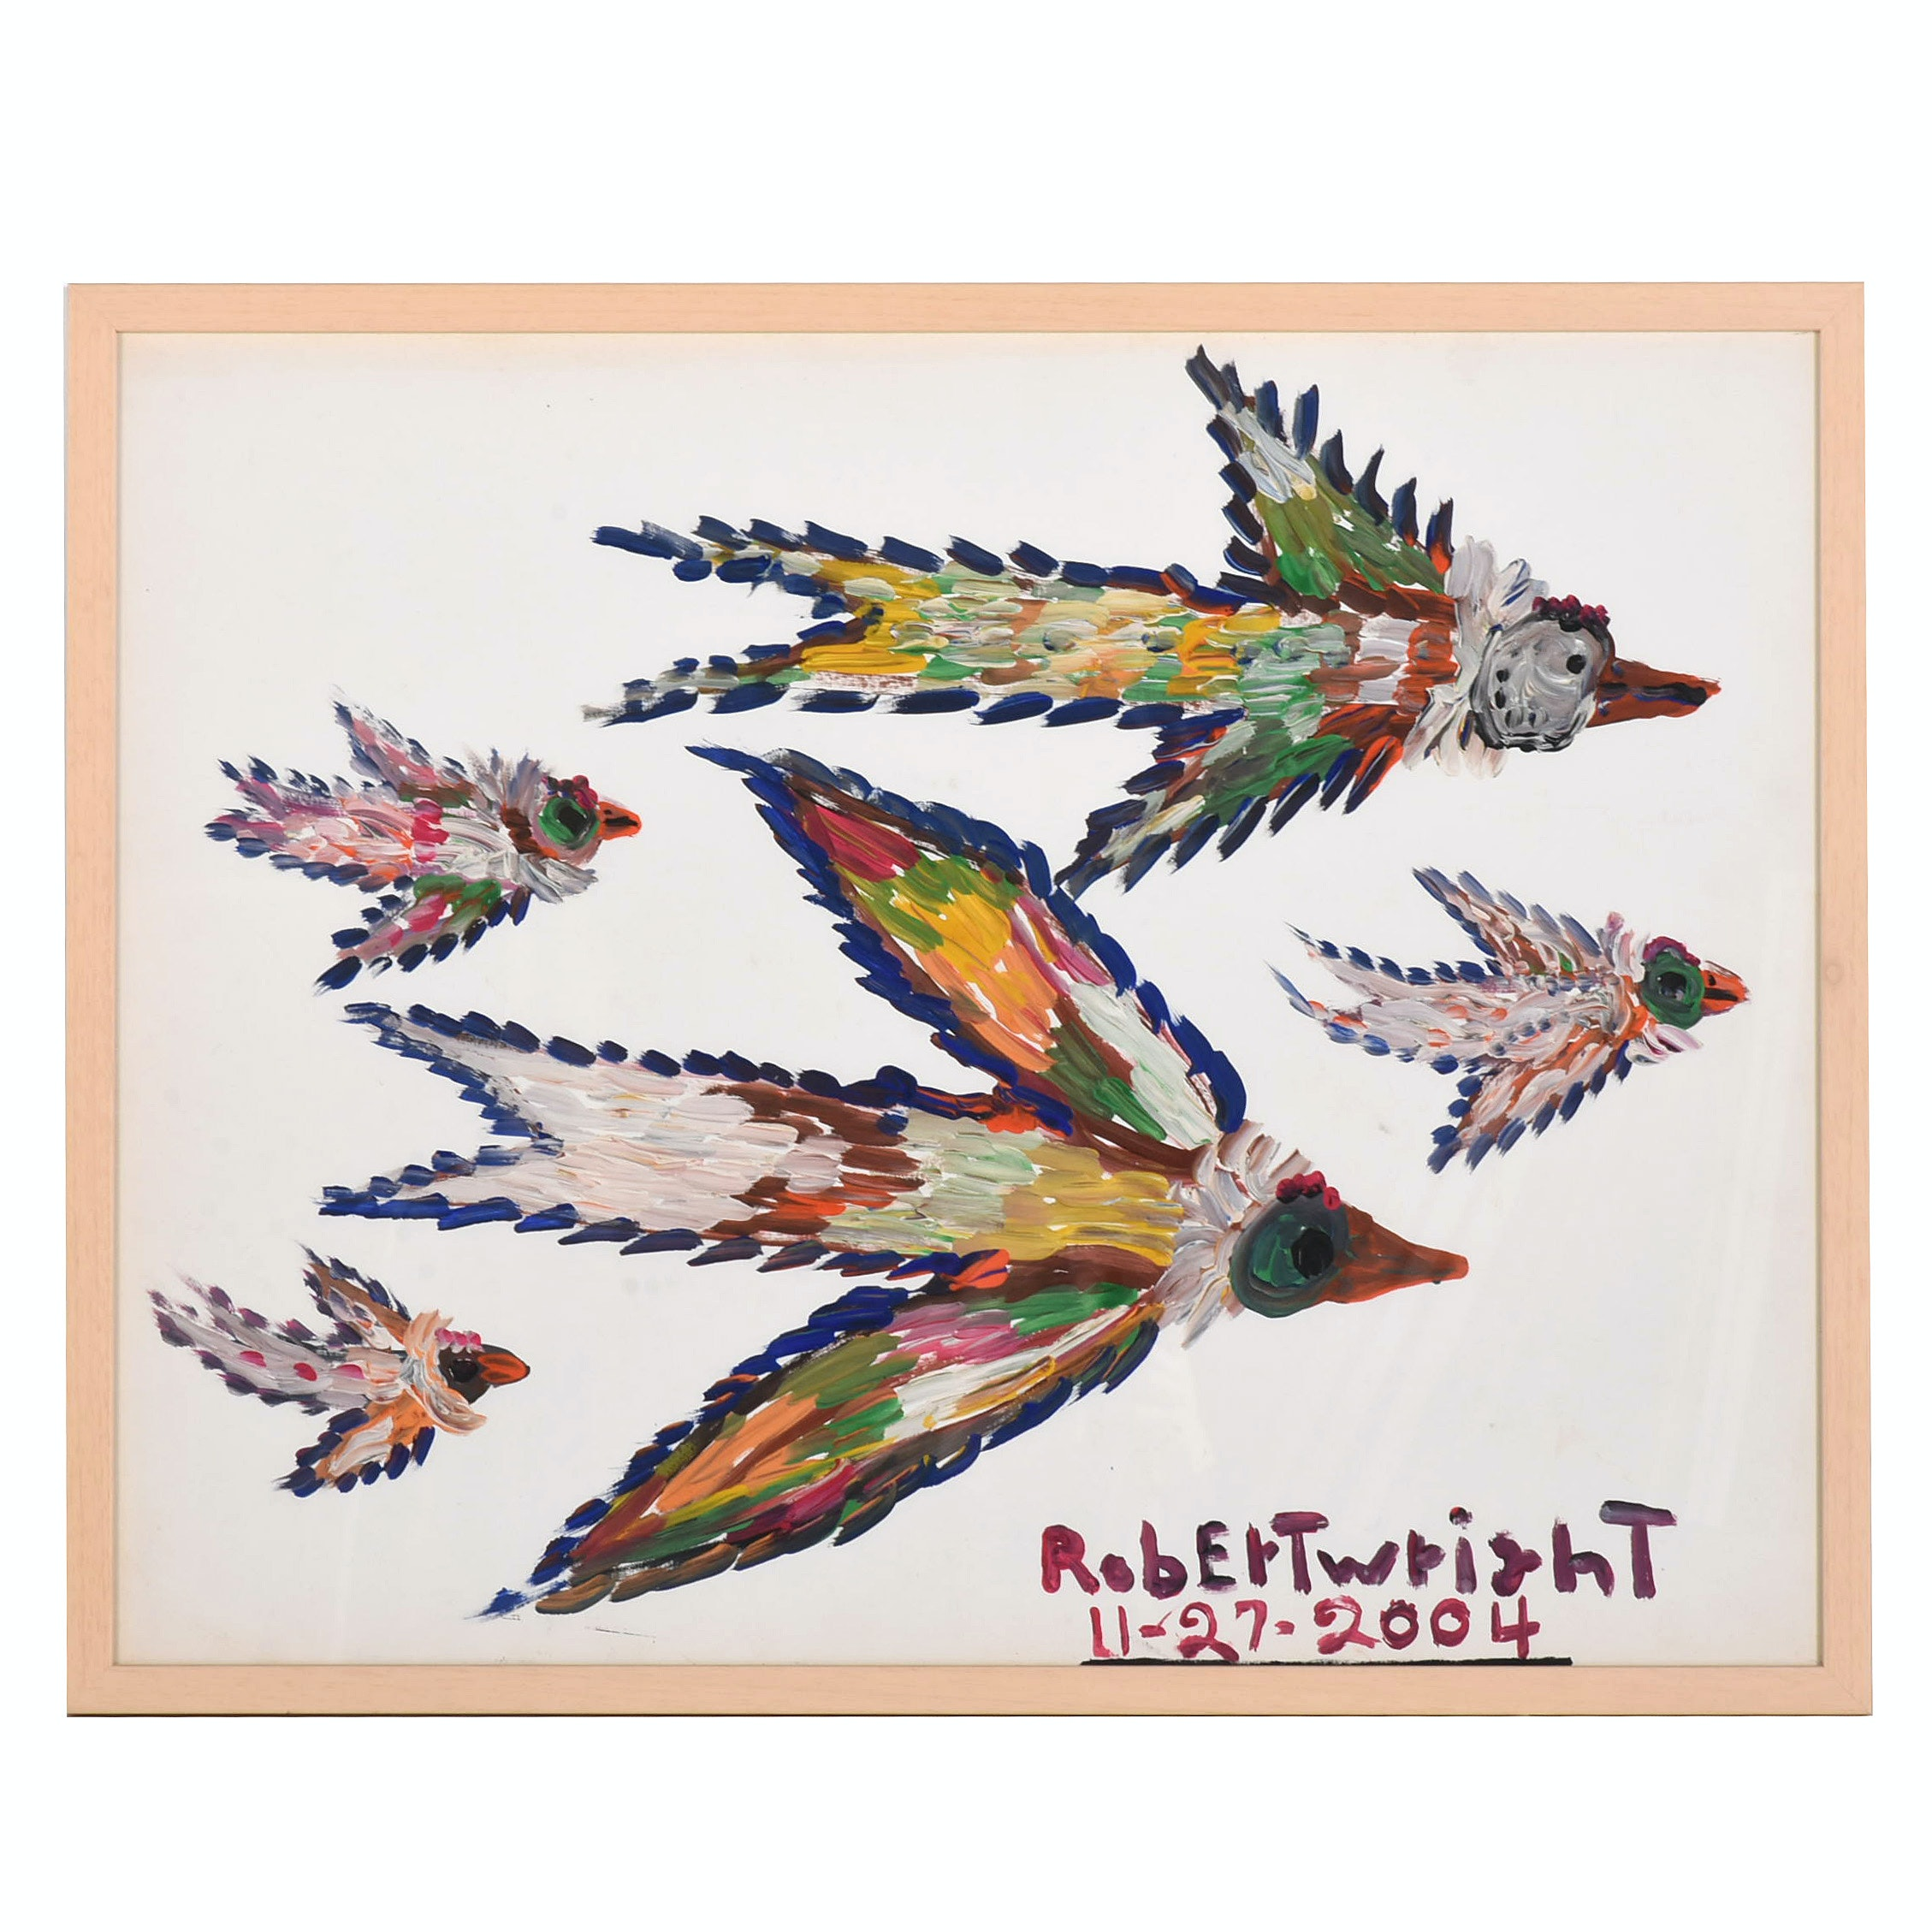 Robert Wright 2004 Acrylic Painting on Paper of Stylized Birds